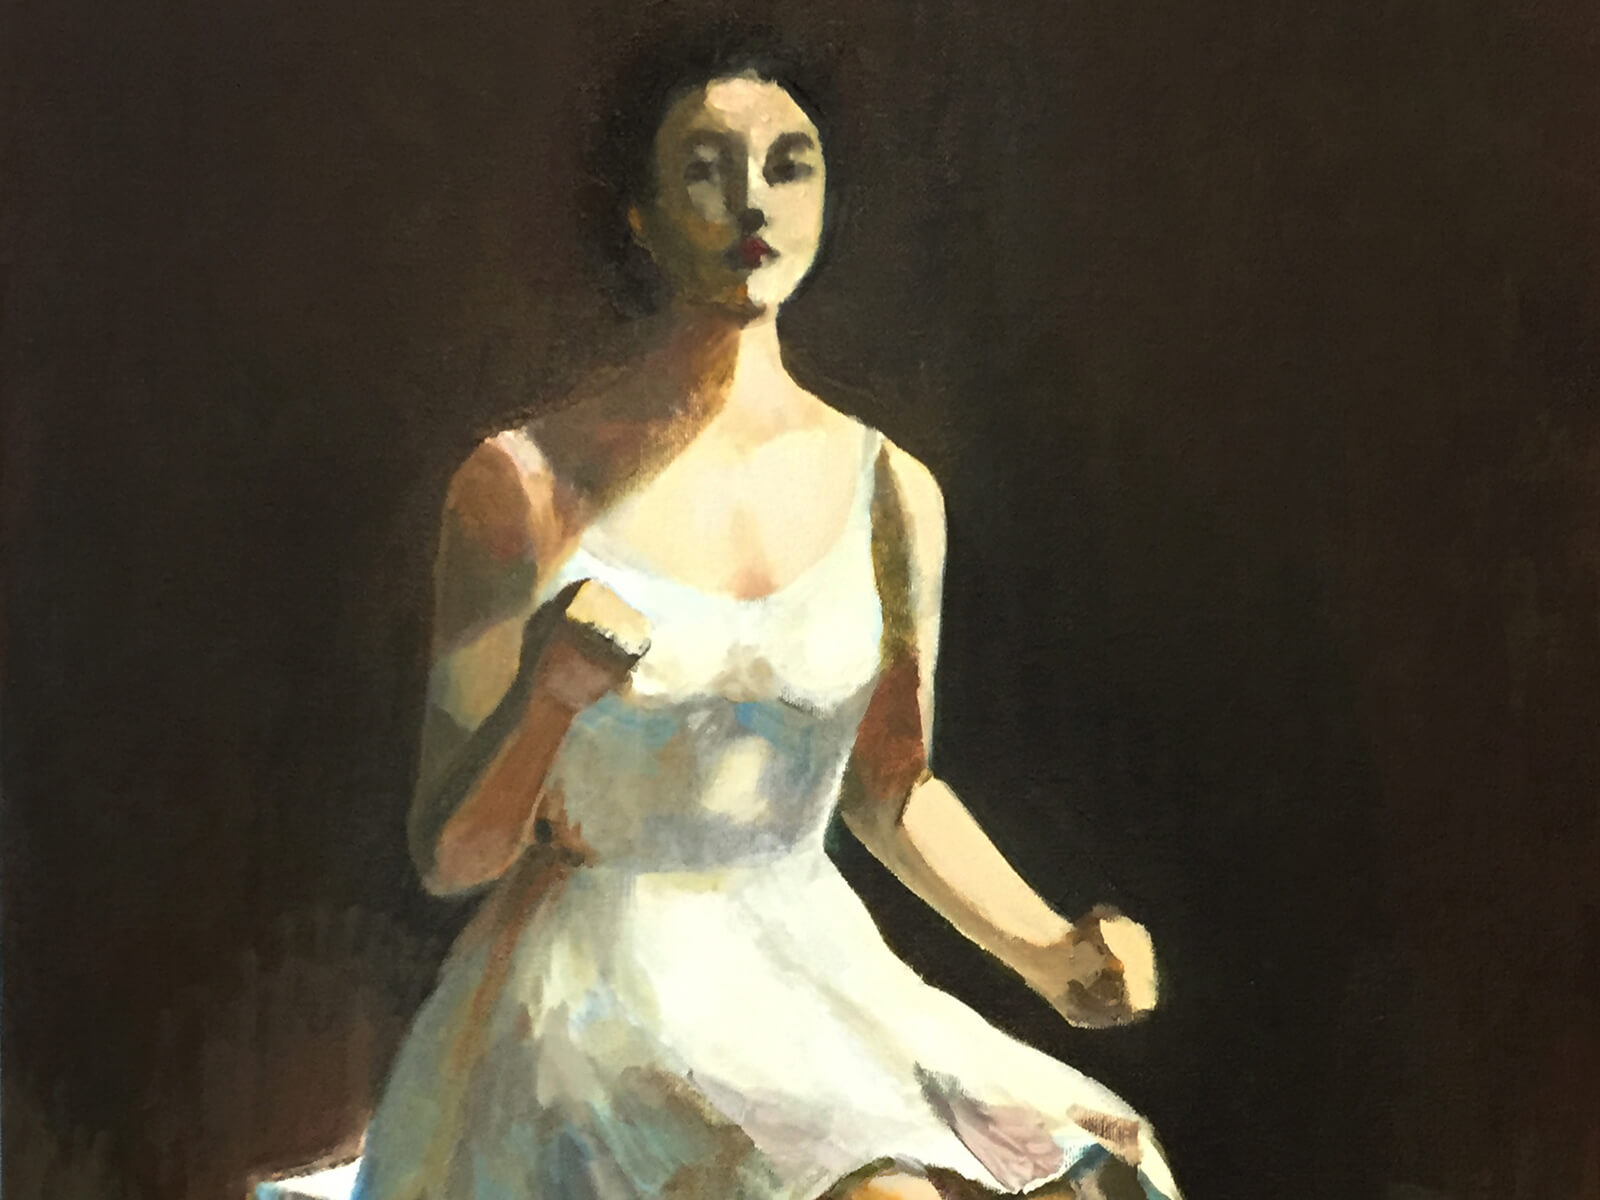 traditional painting of a dark-haired woman in a long white dress sitting on a box